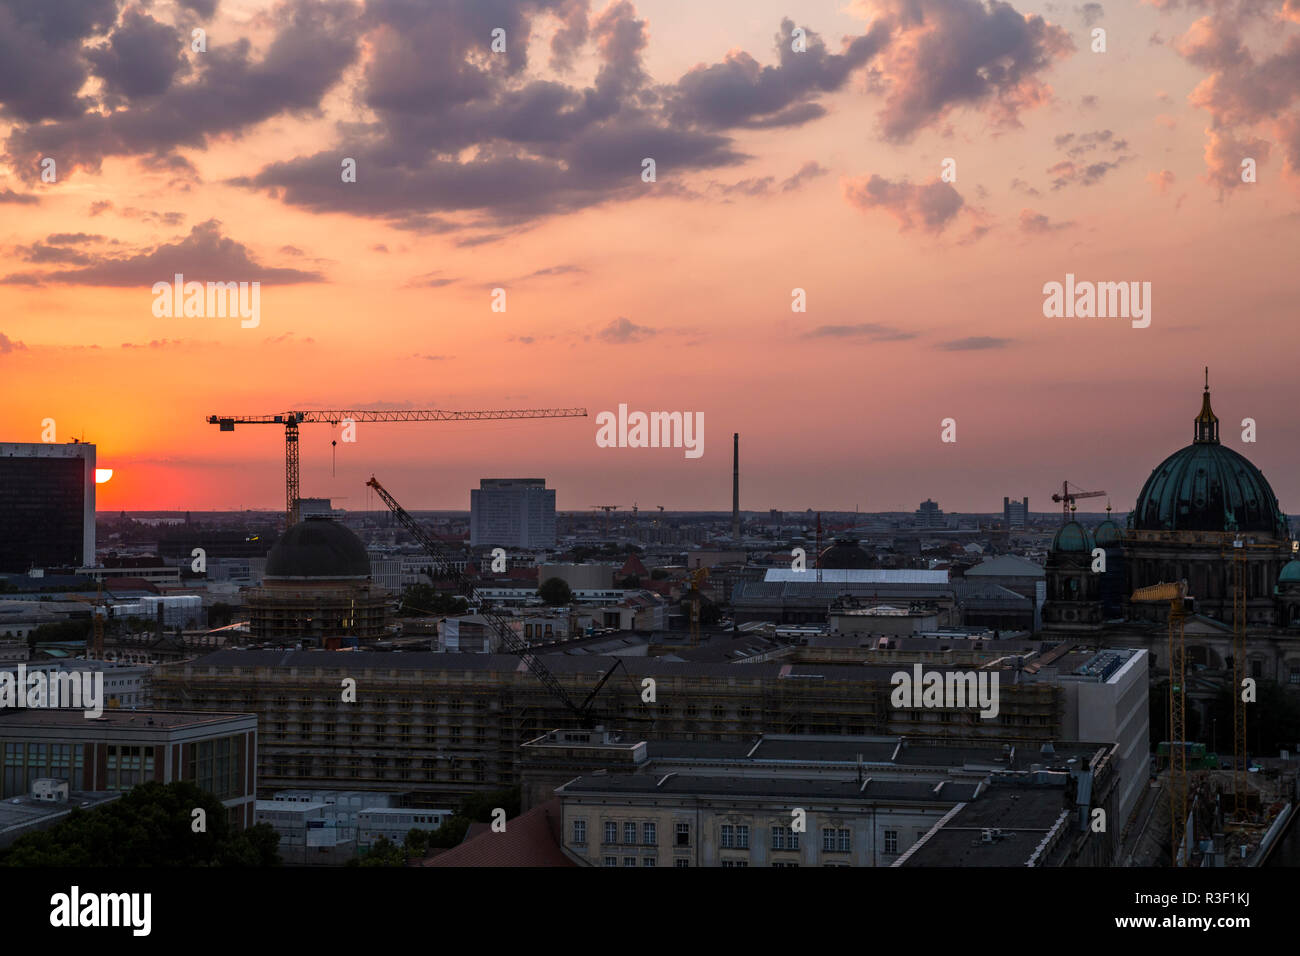 The sun sets over the north of Berlin, seen from the Fischerinsel in